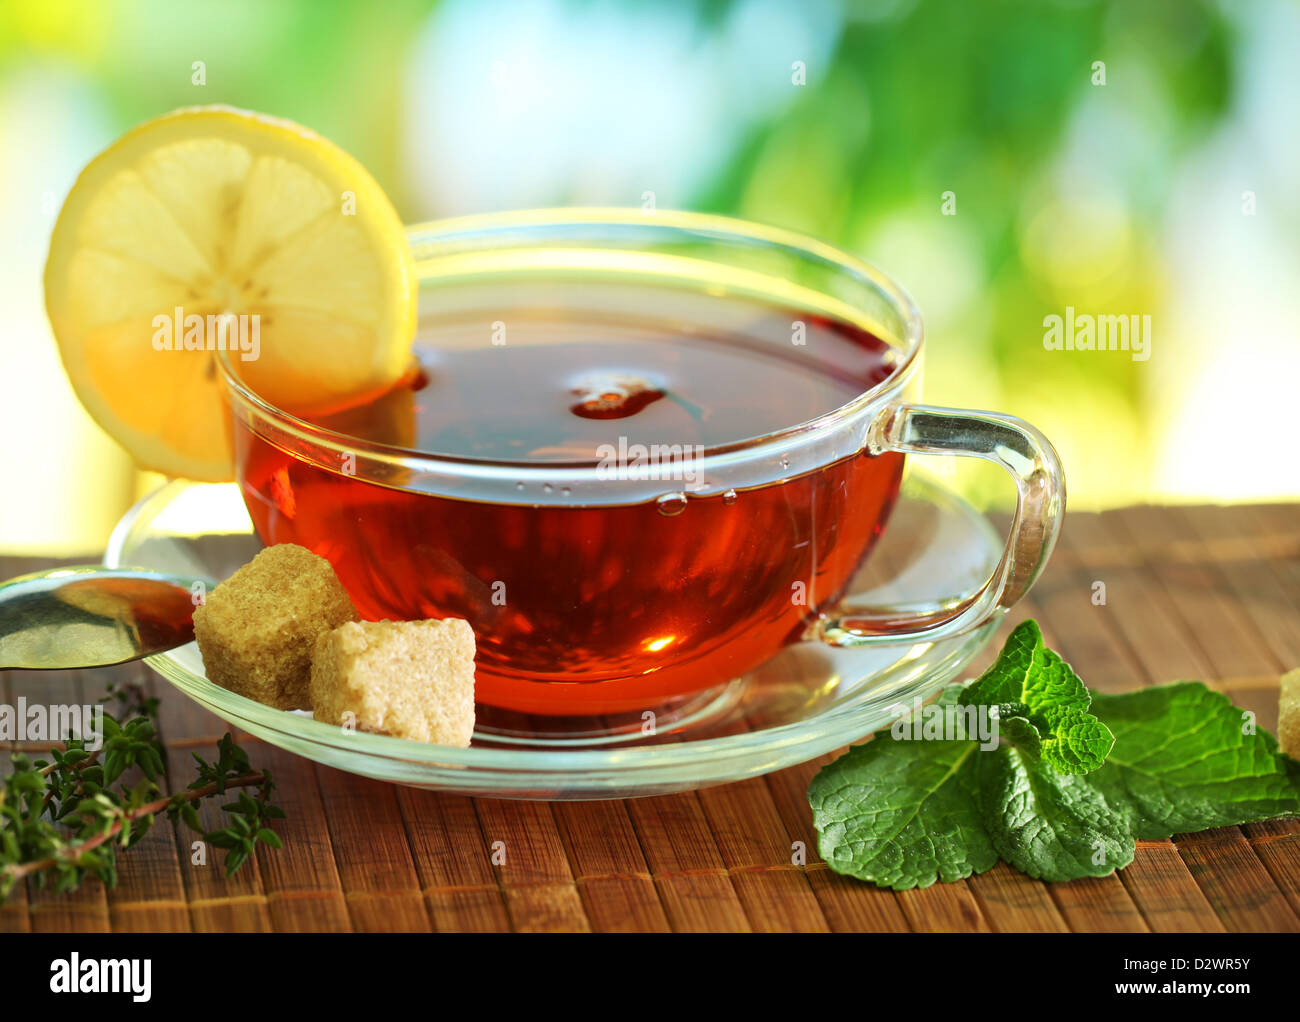 Cup of tea on a blurred background of nature. - Stock Image